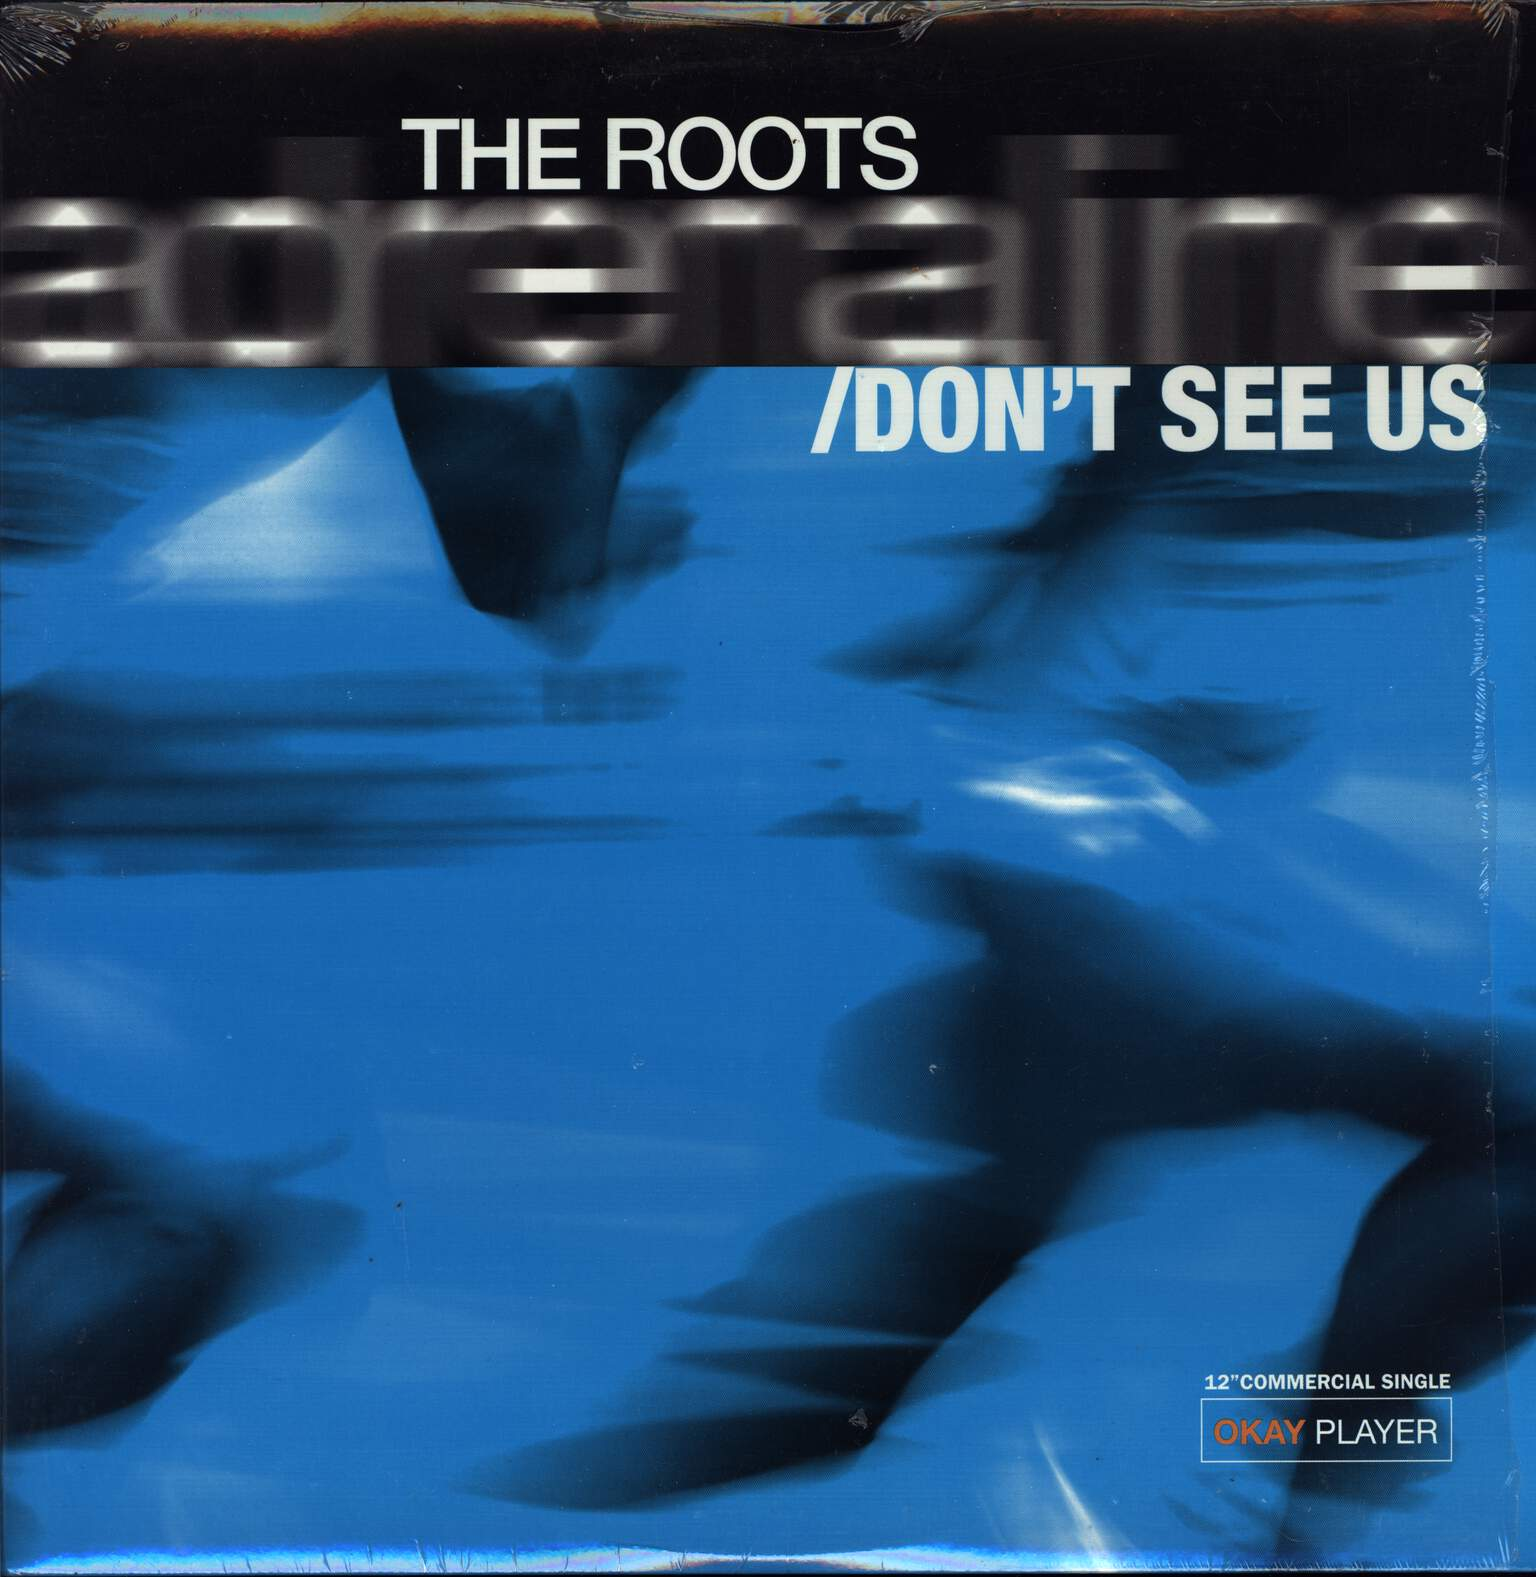 "The Roots: Adrenaline / Don't See Us, 12"" Maxi Single (Vinyl)"